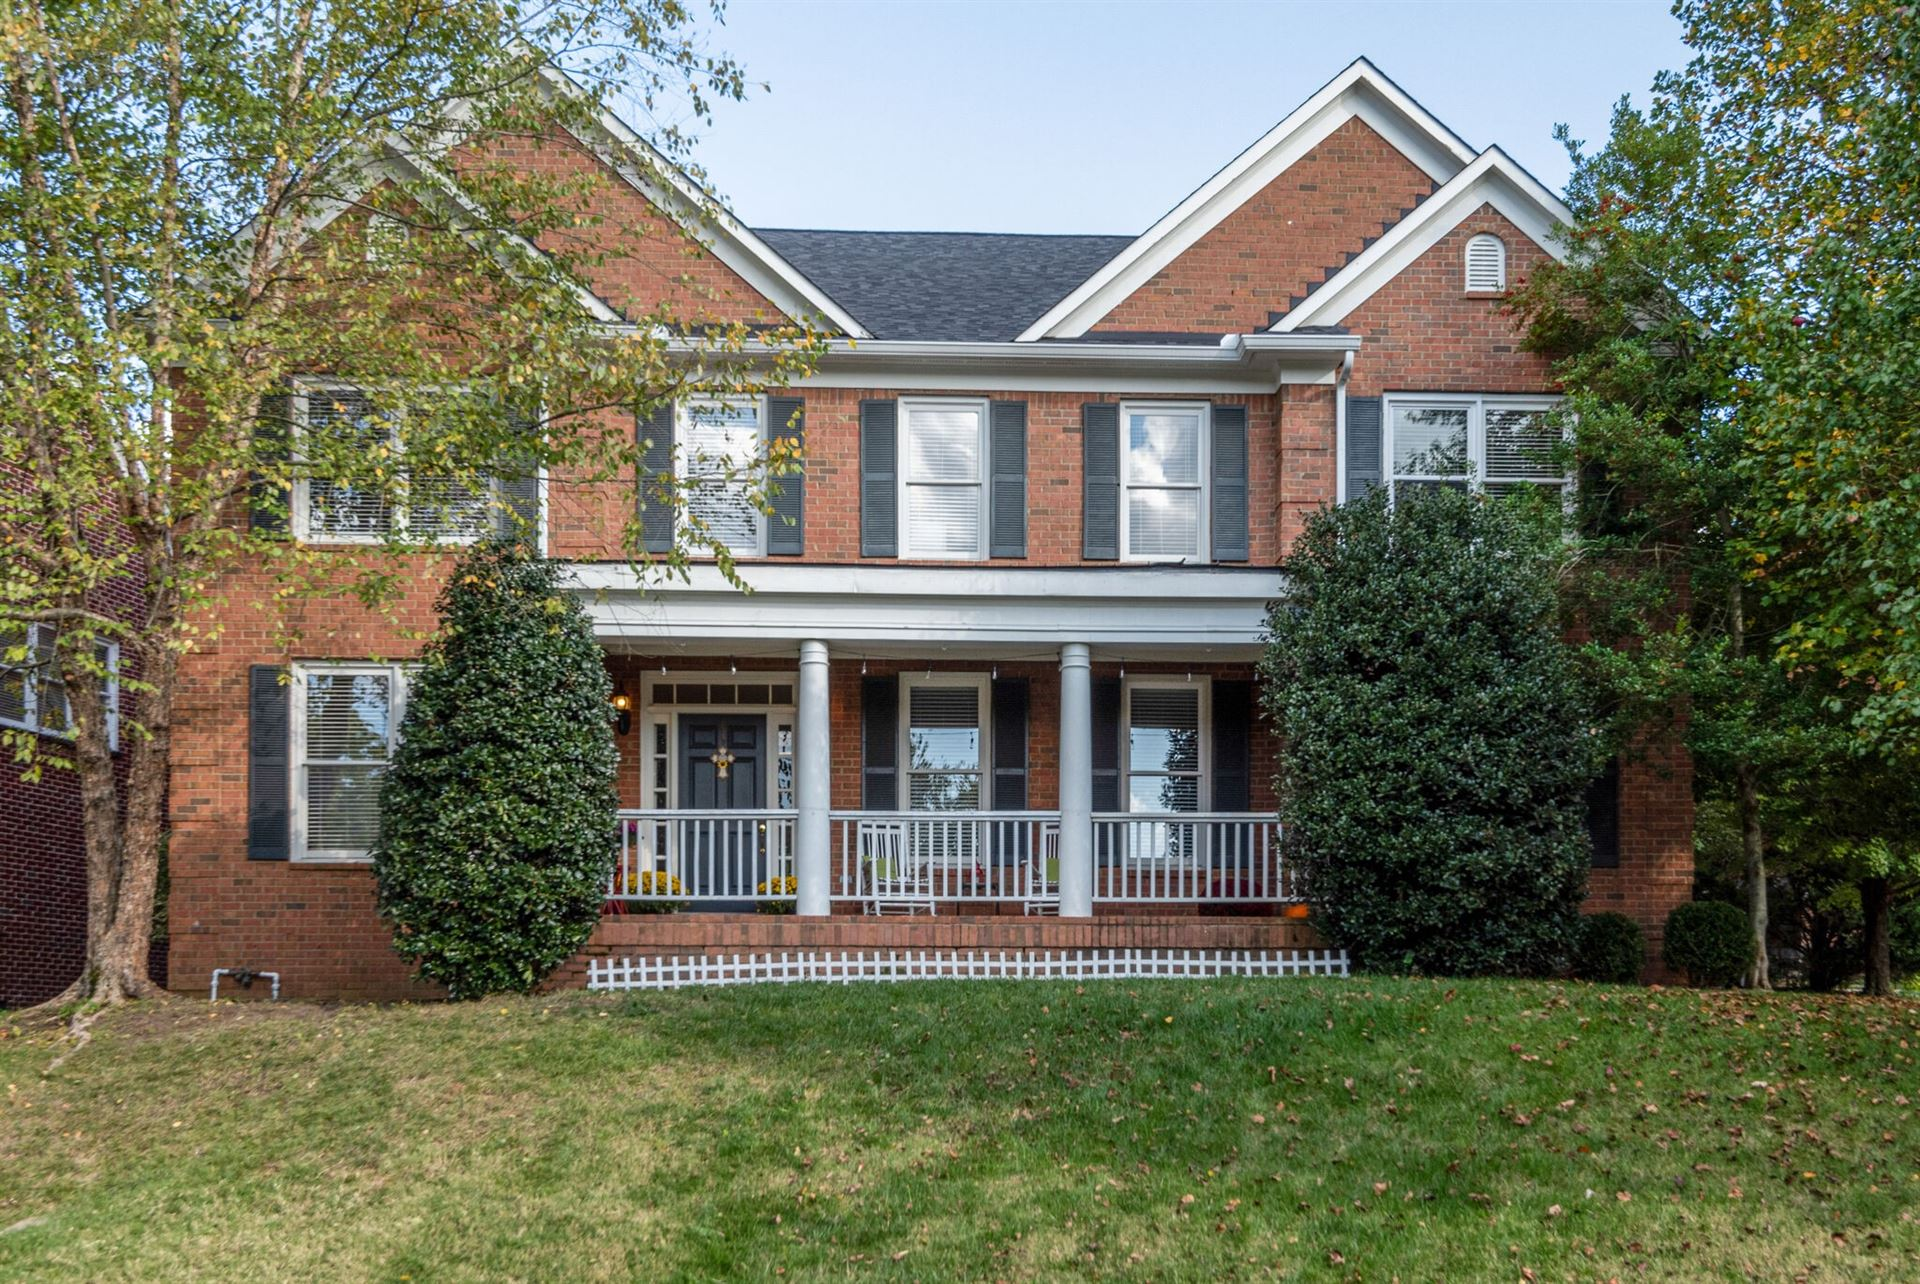 200 Bexley Park Dr, Franklin, TN 37069 - MLS#: 2195443